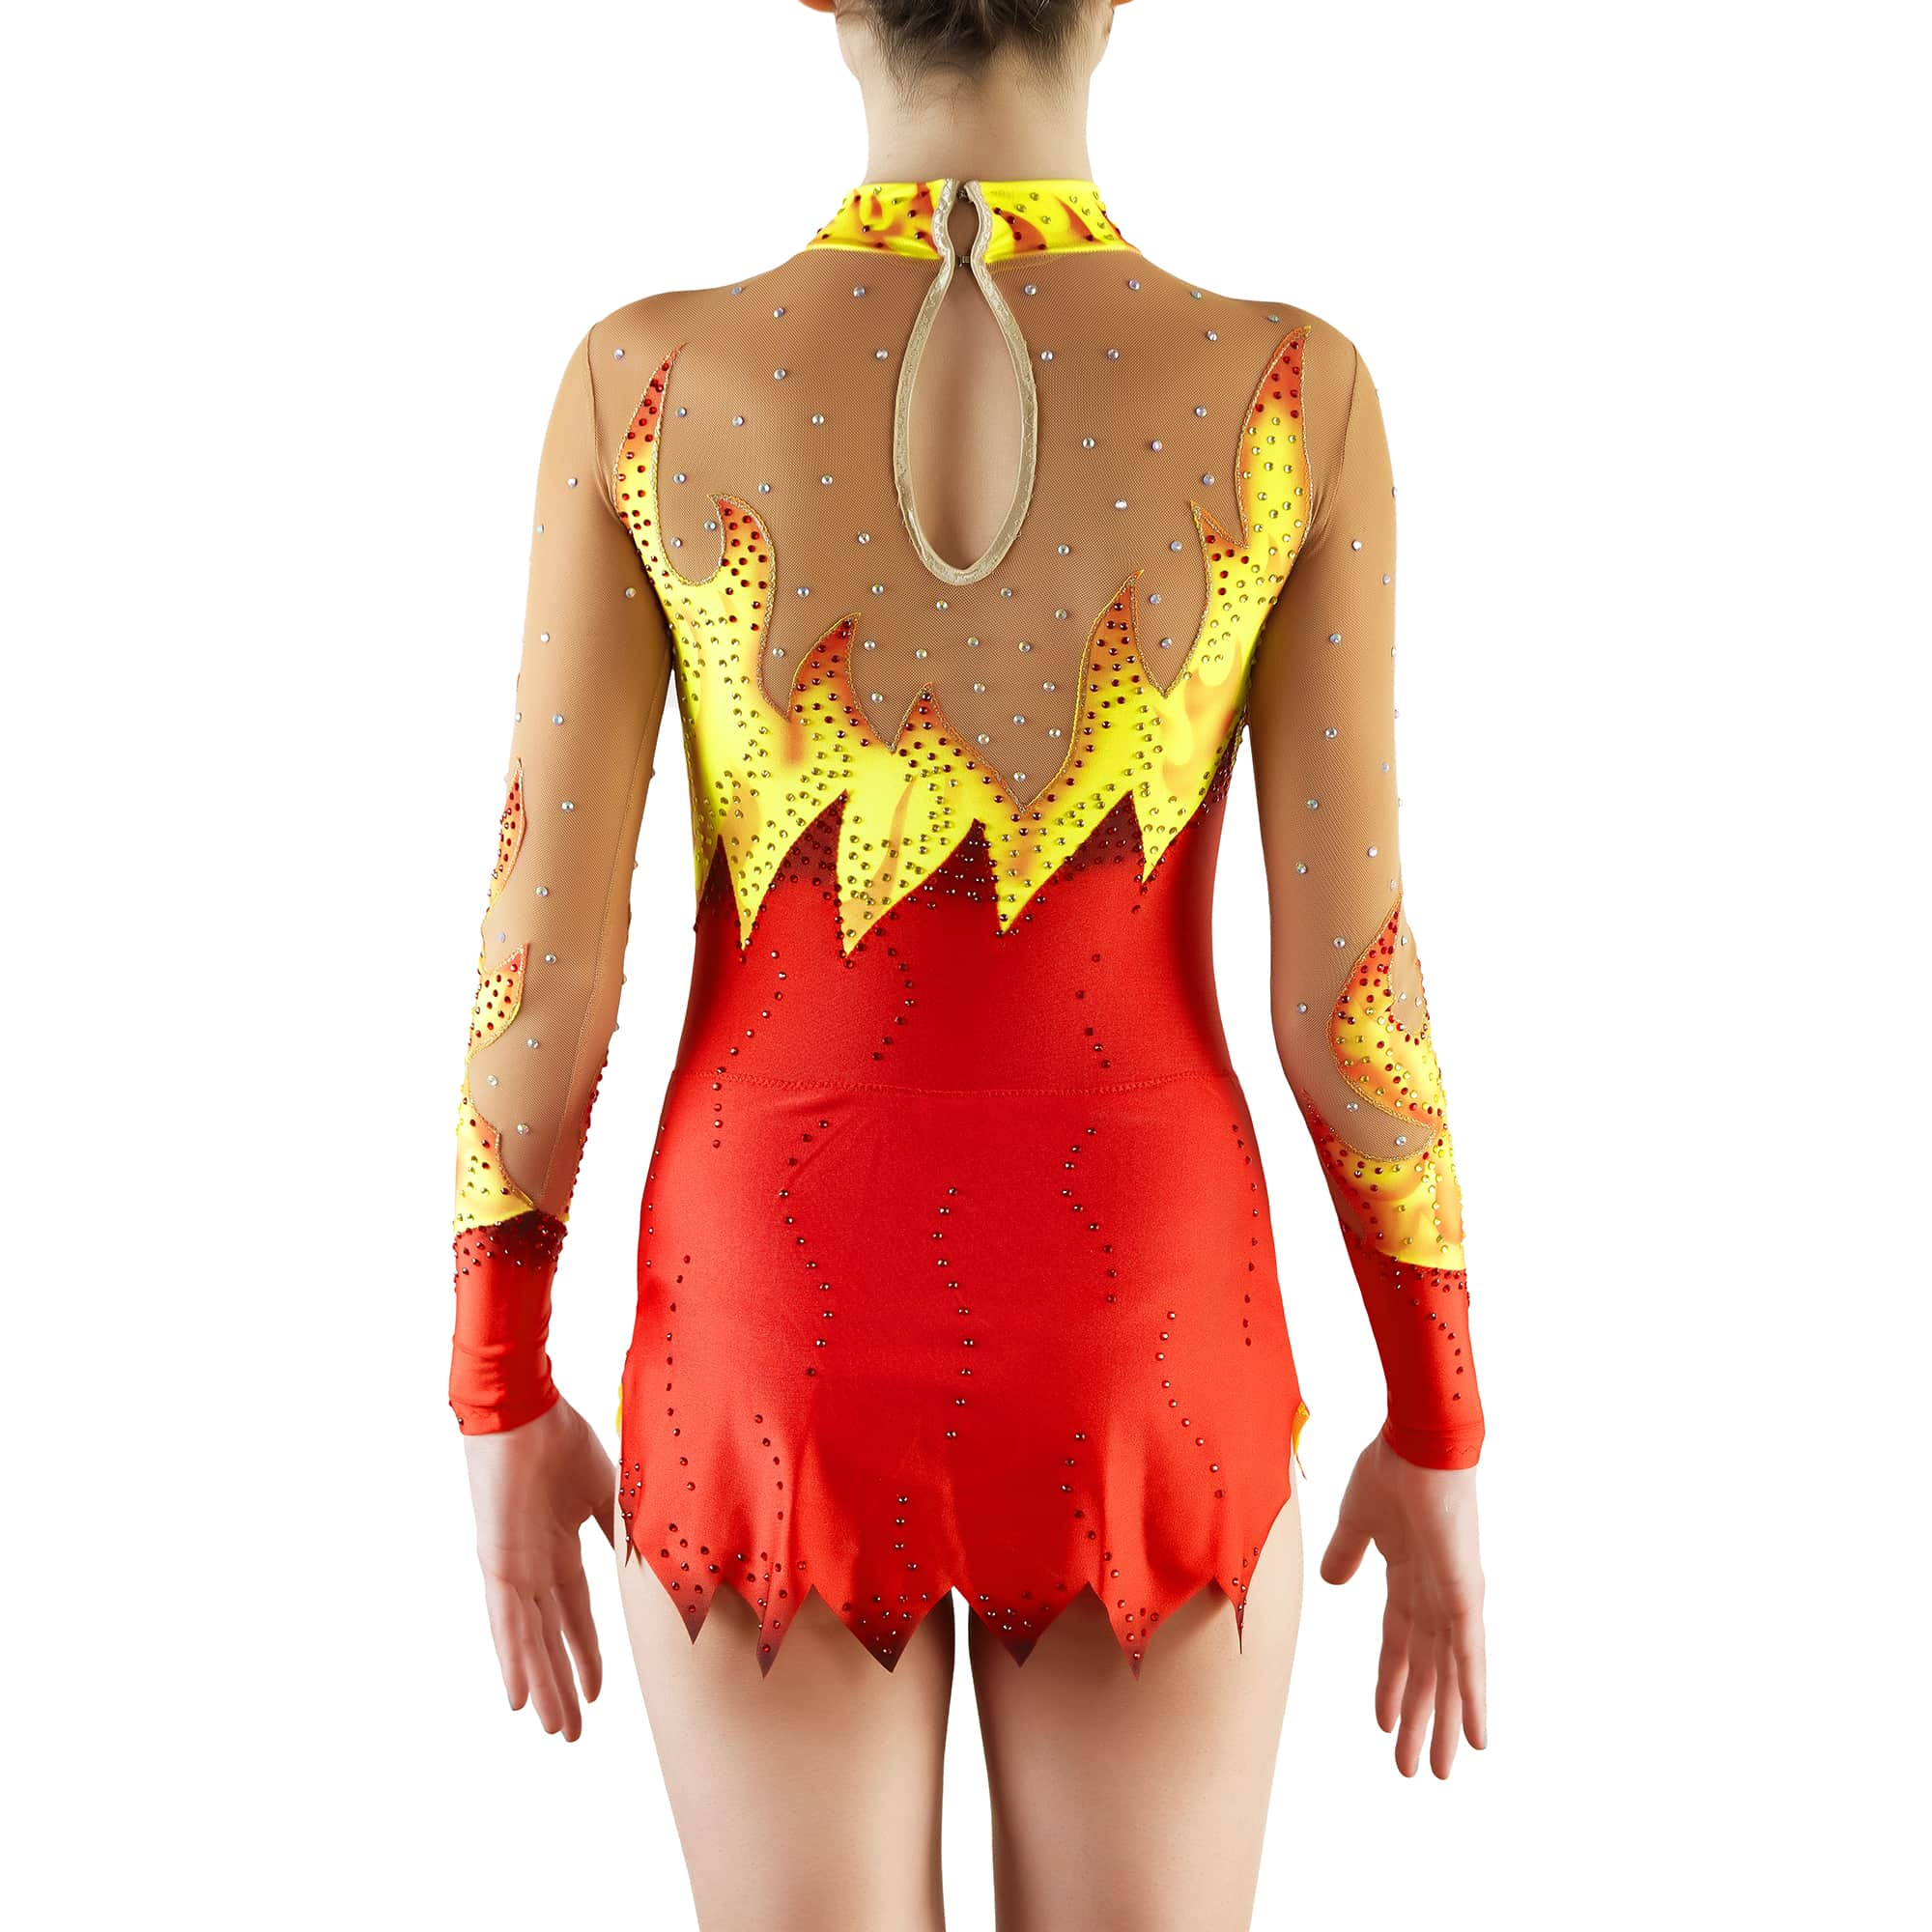 Back view of flame rhythmic gymnastics leotard with fire elements made in red and yellow colours